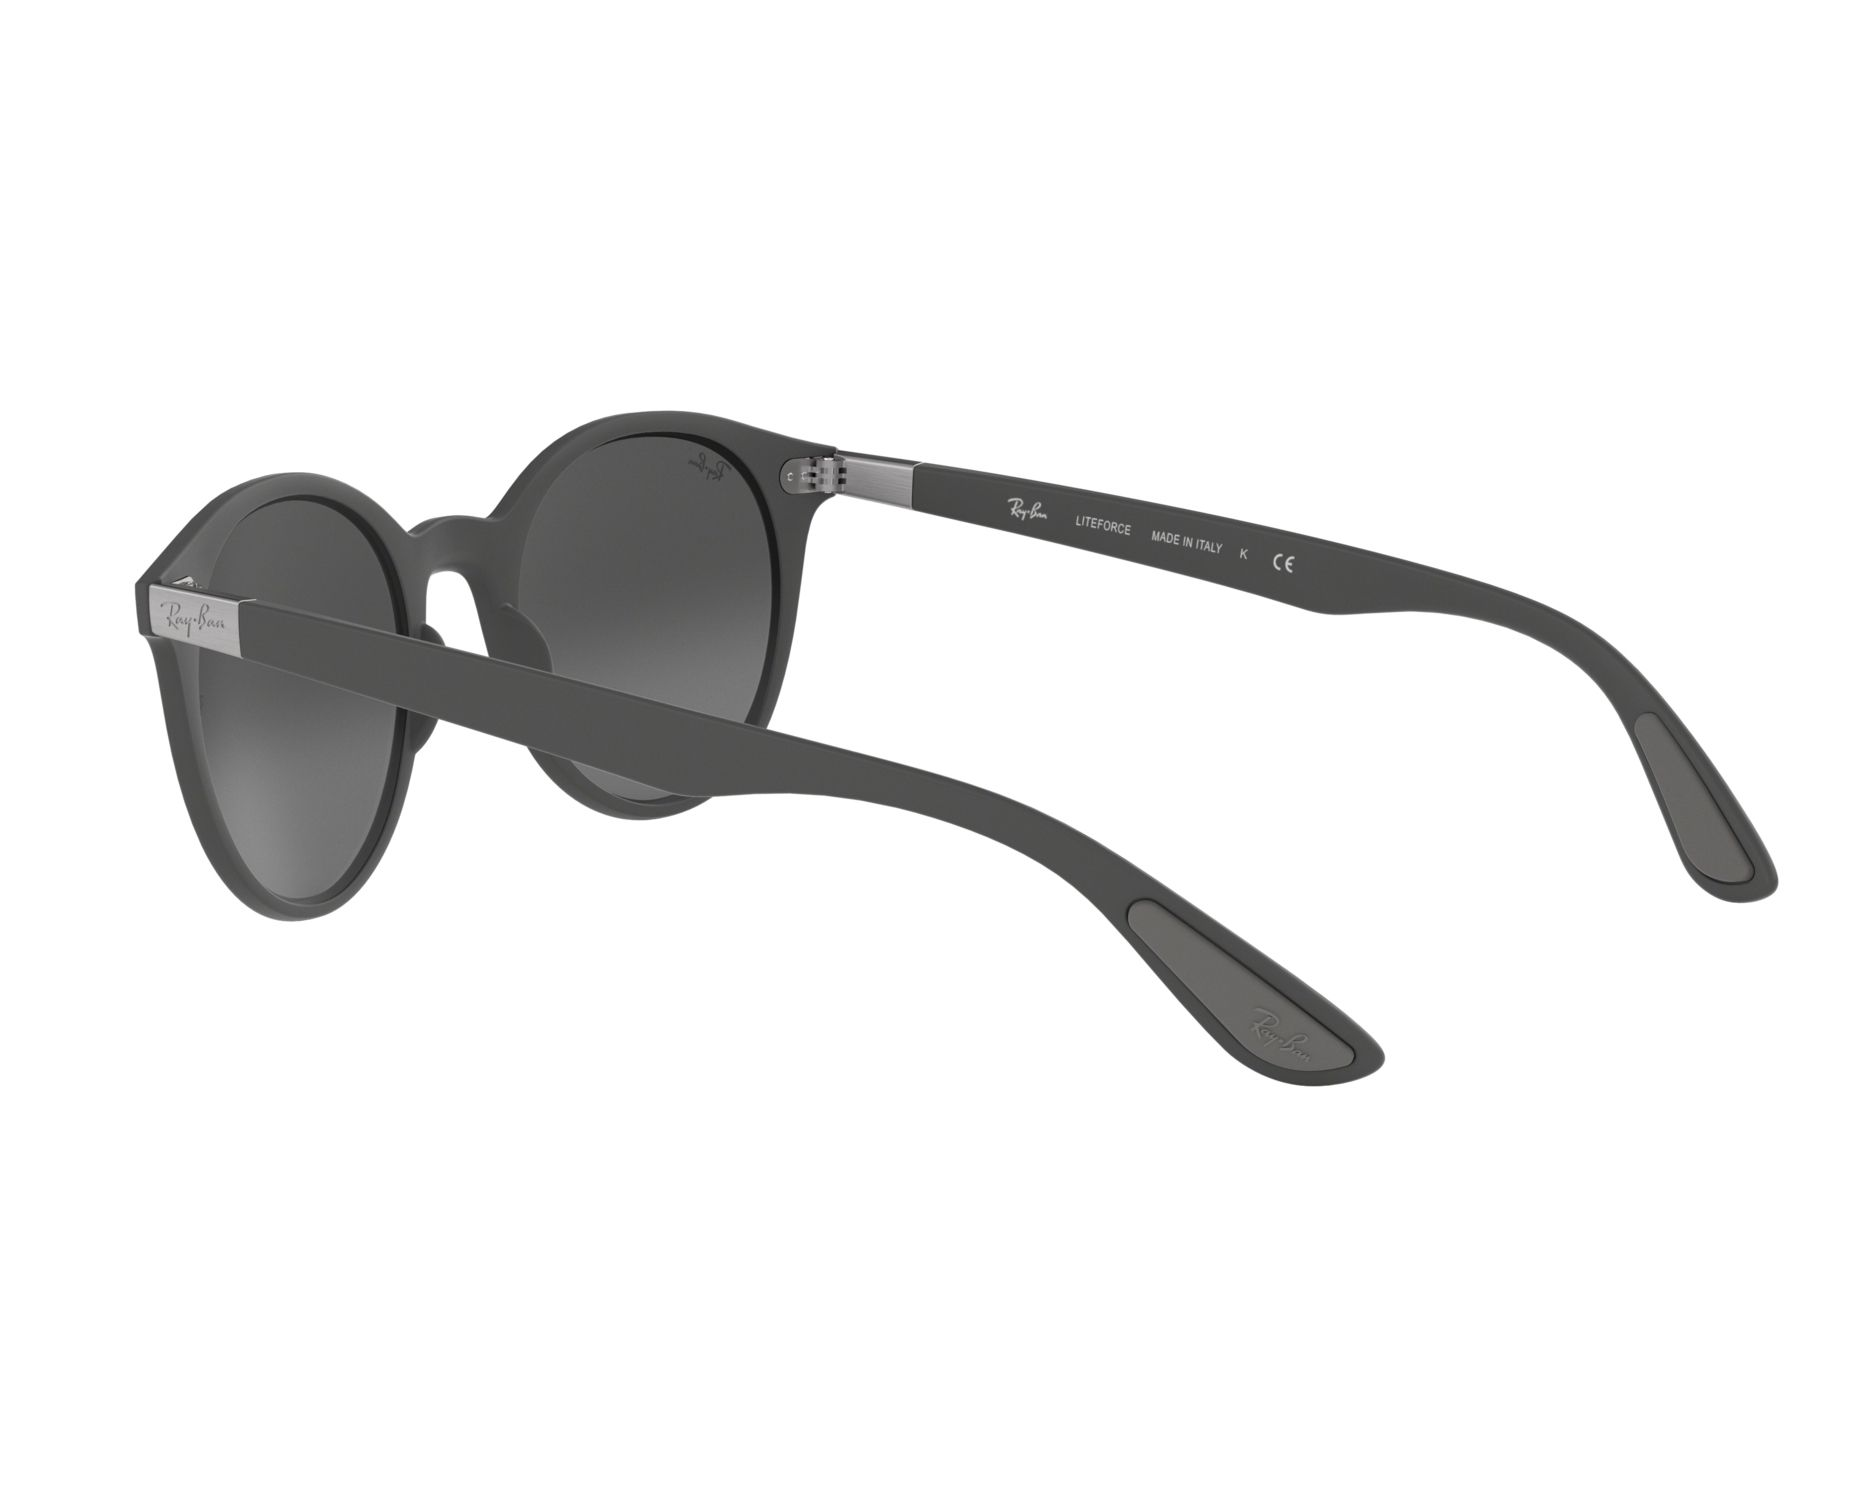 99797c54d9 Sunglasses Ray-Ban RB-4296 633288 51-21 Grey 360 degree view 5